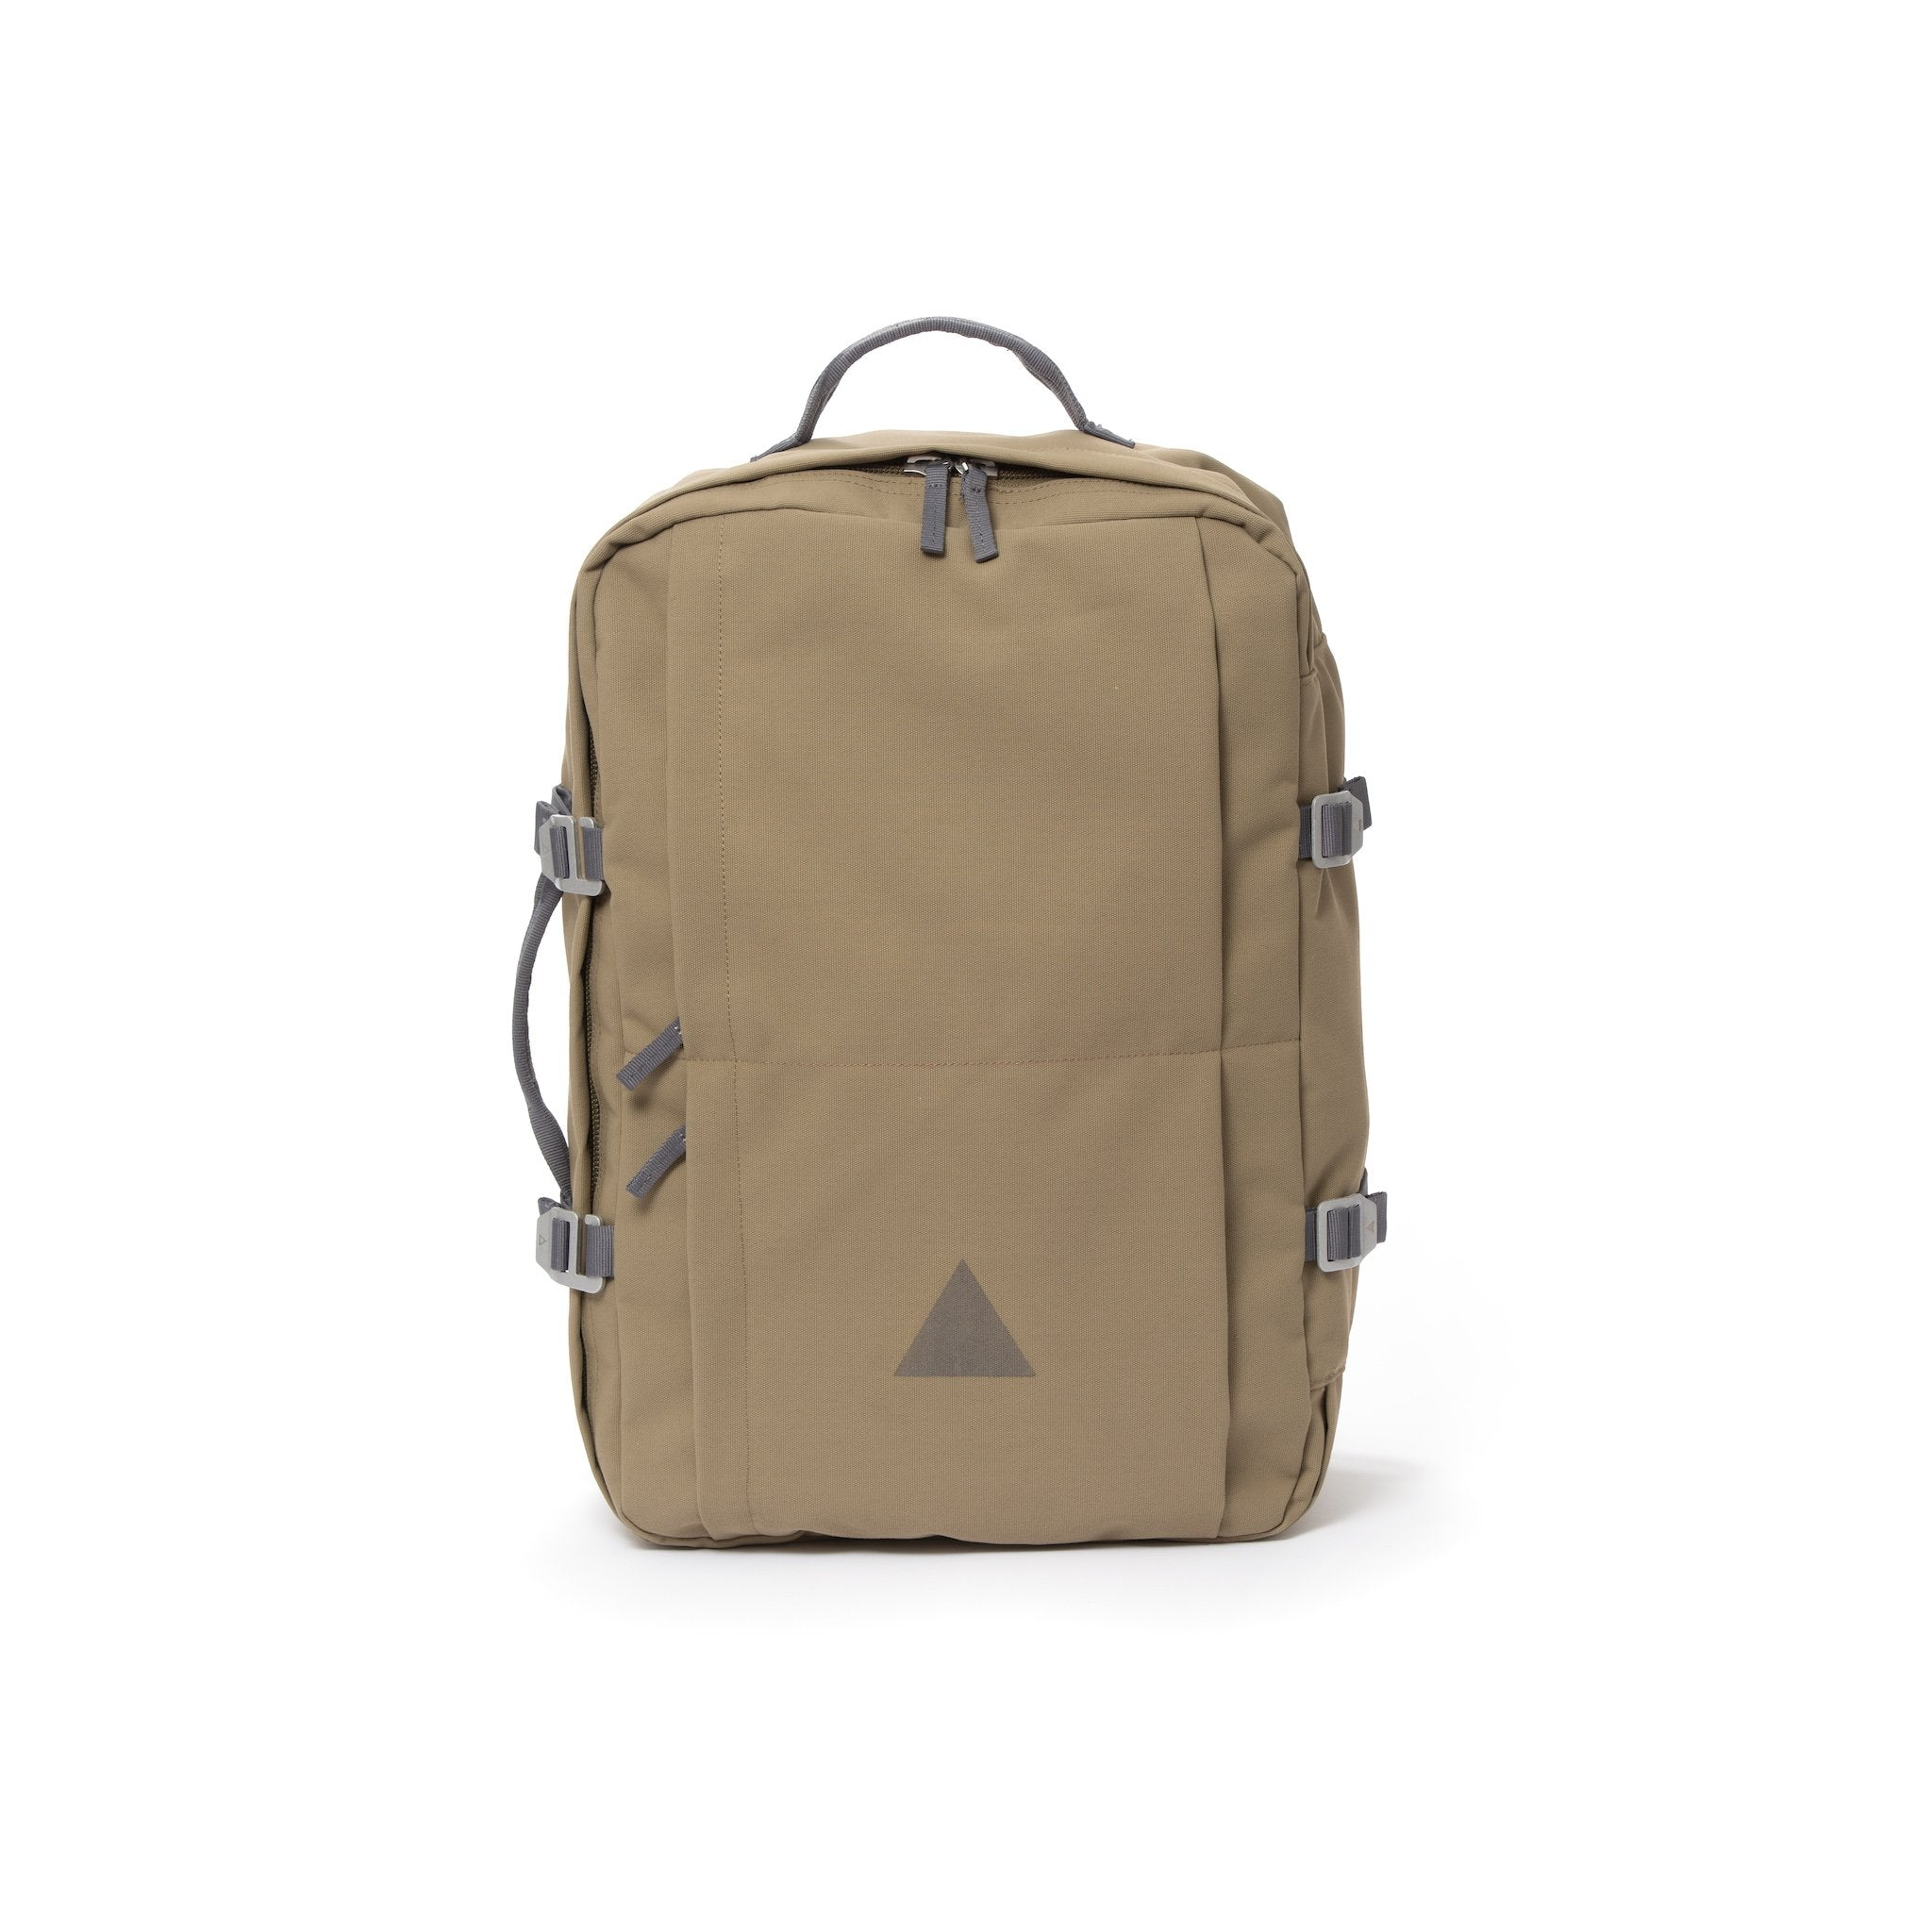 Khaki recycled canvas travel backpack.